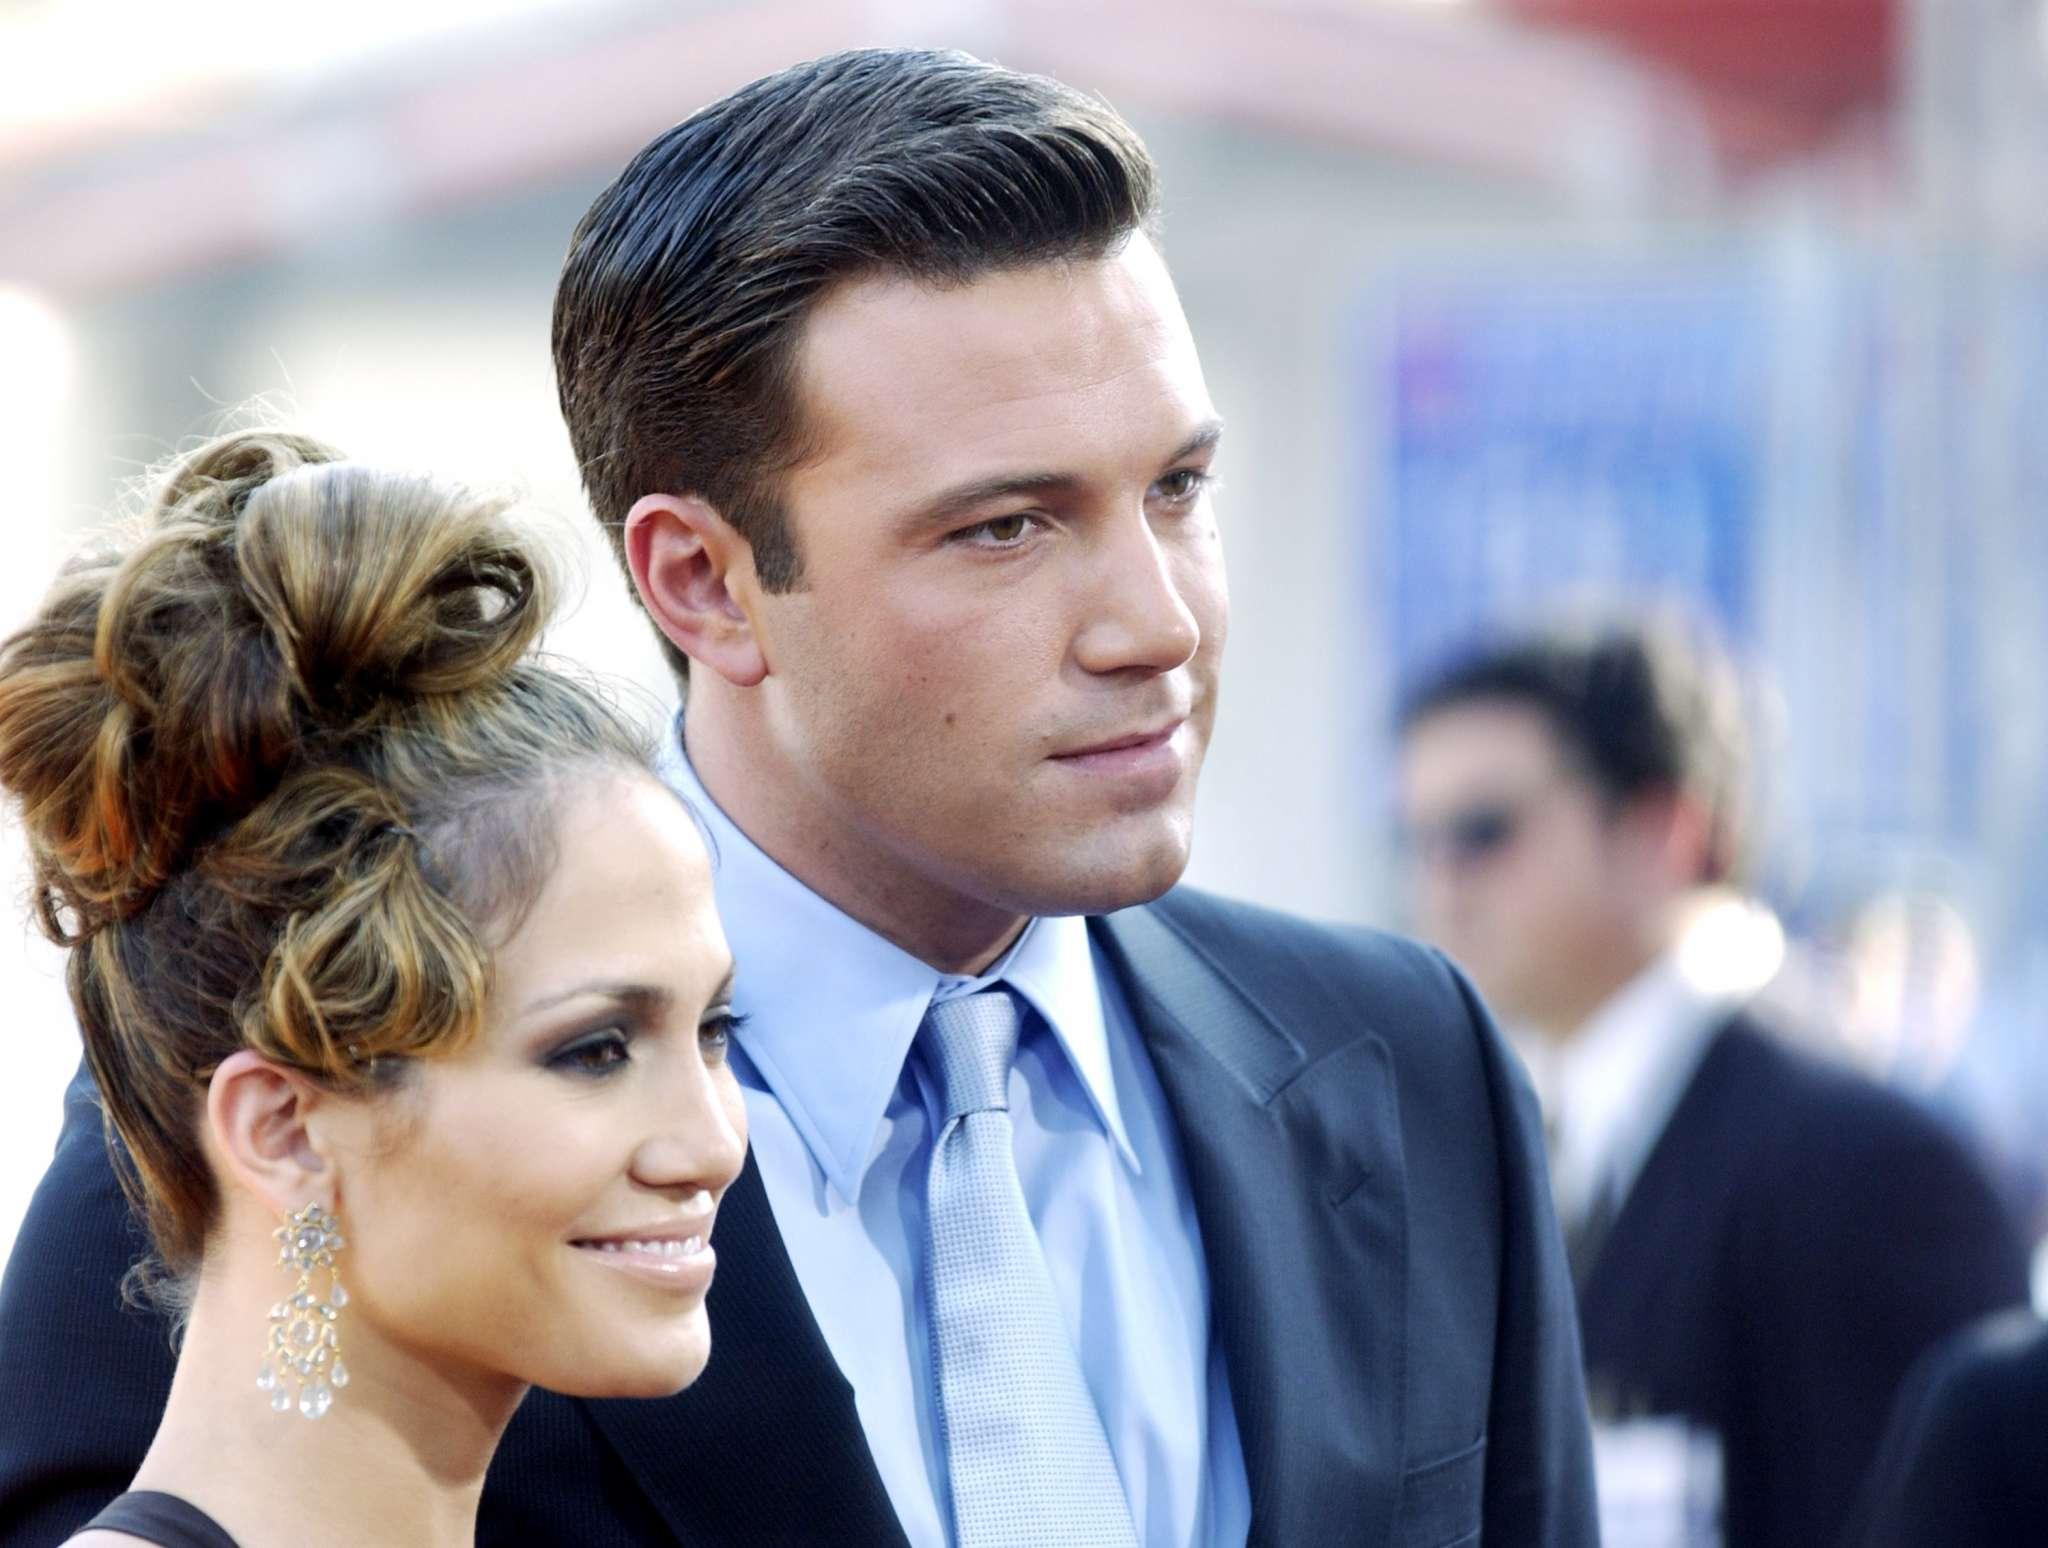 ben-affleck-raves-about-jennifer-lopez-17-years-after-split-you-look-the-same-as-you-did-in-2003